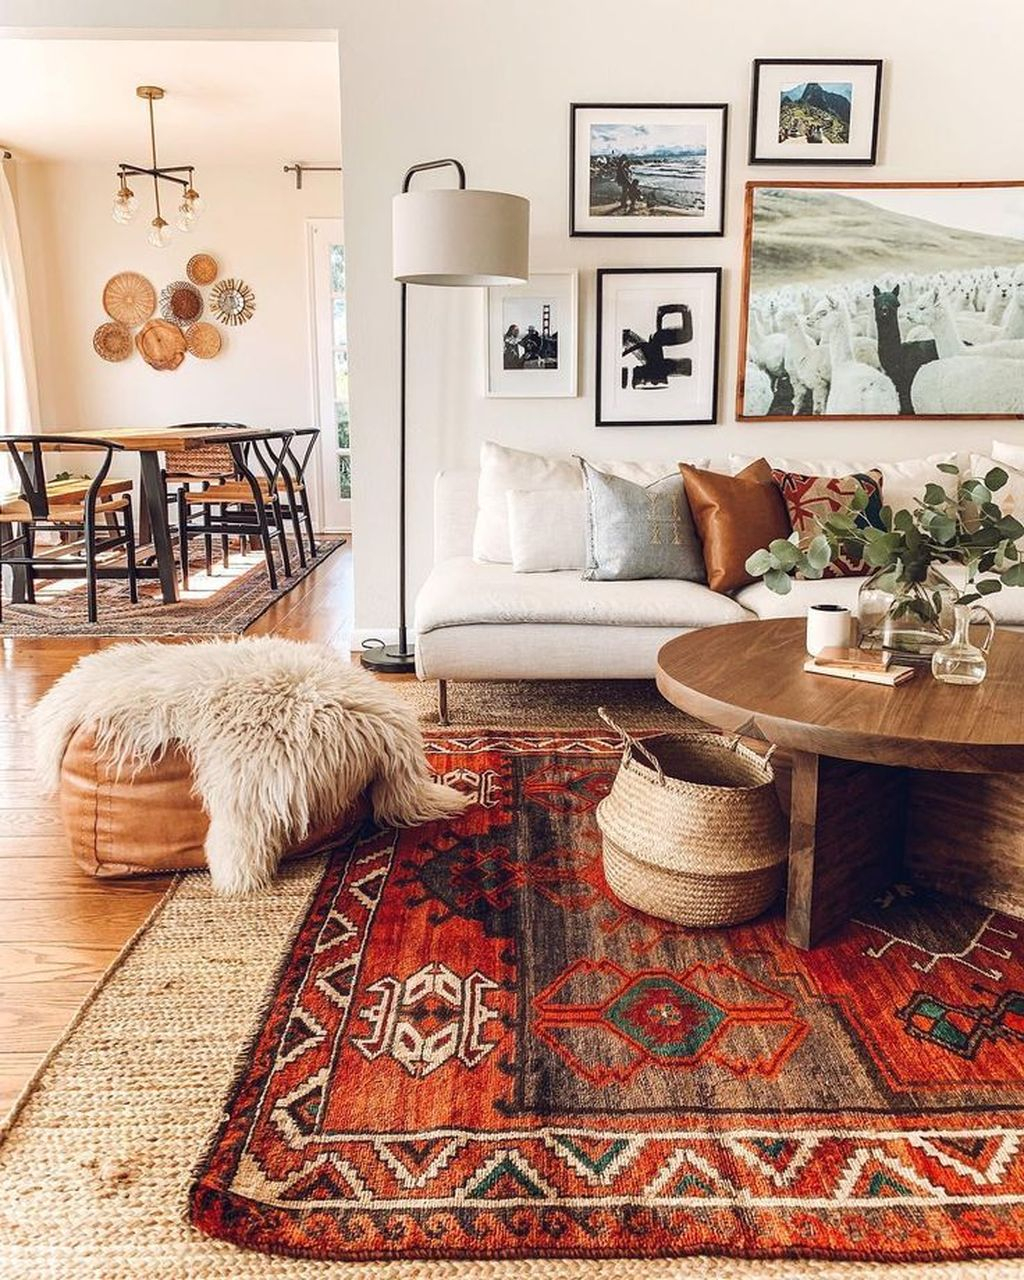 Wonderful Interior Decorating Ideas For Your Dream Home 23